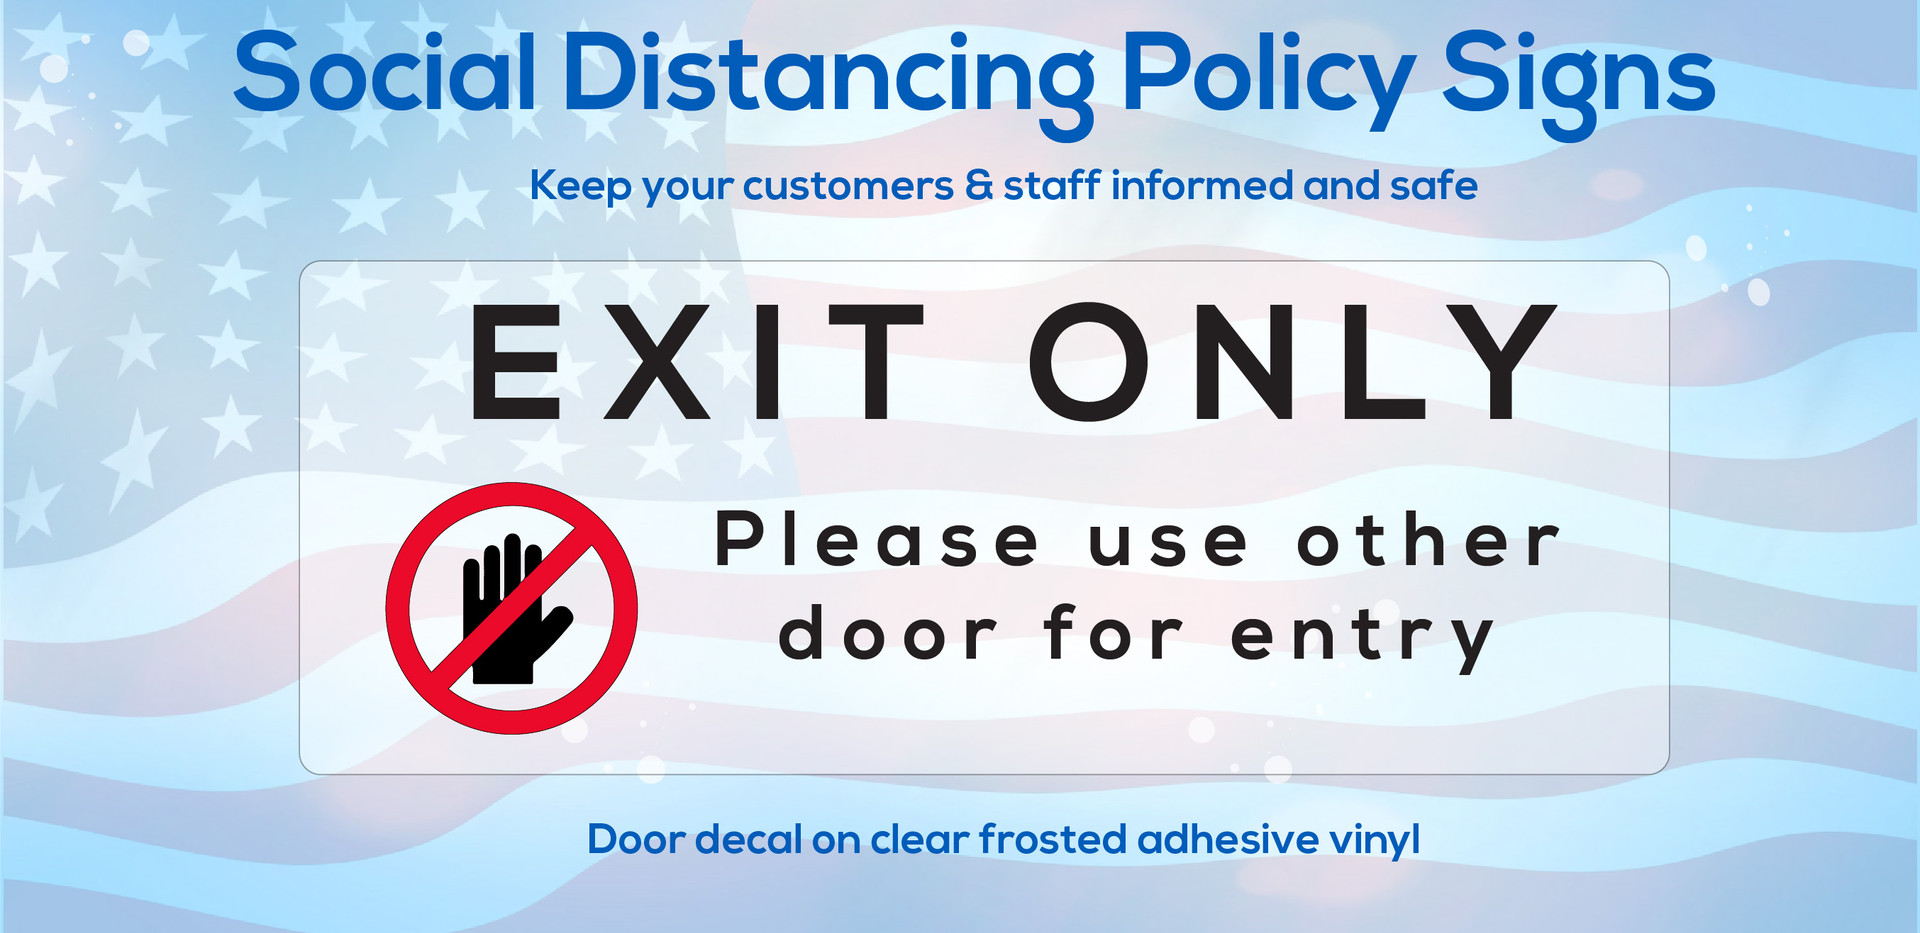 Exit Only social distancing policy sign on clear vinyl - a great solution for traffic control.